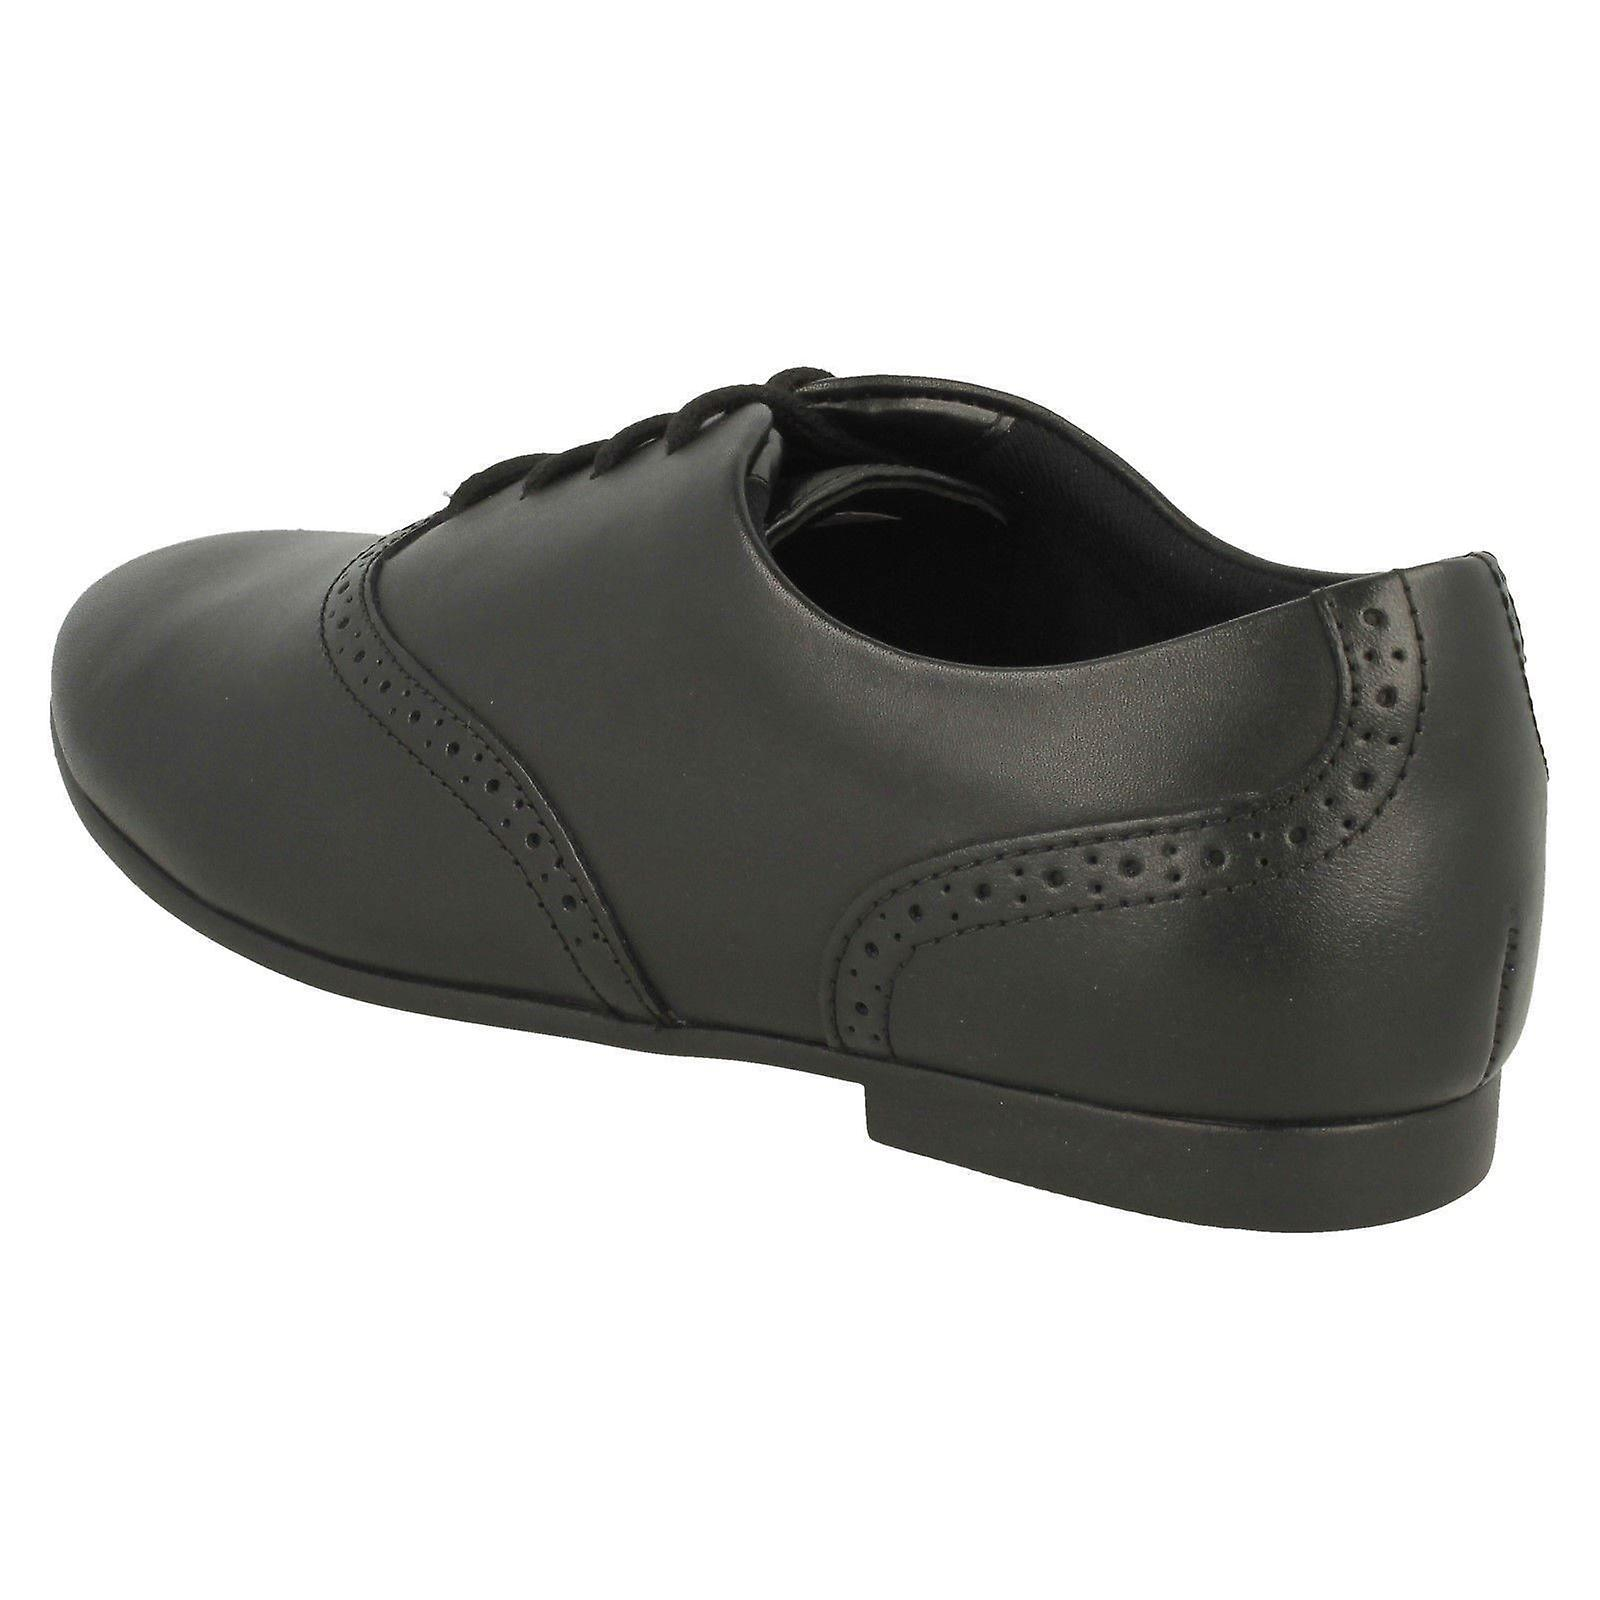 Clarks Jules Walk Black Leather Lace Up